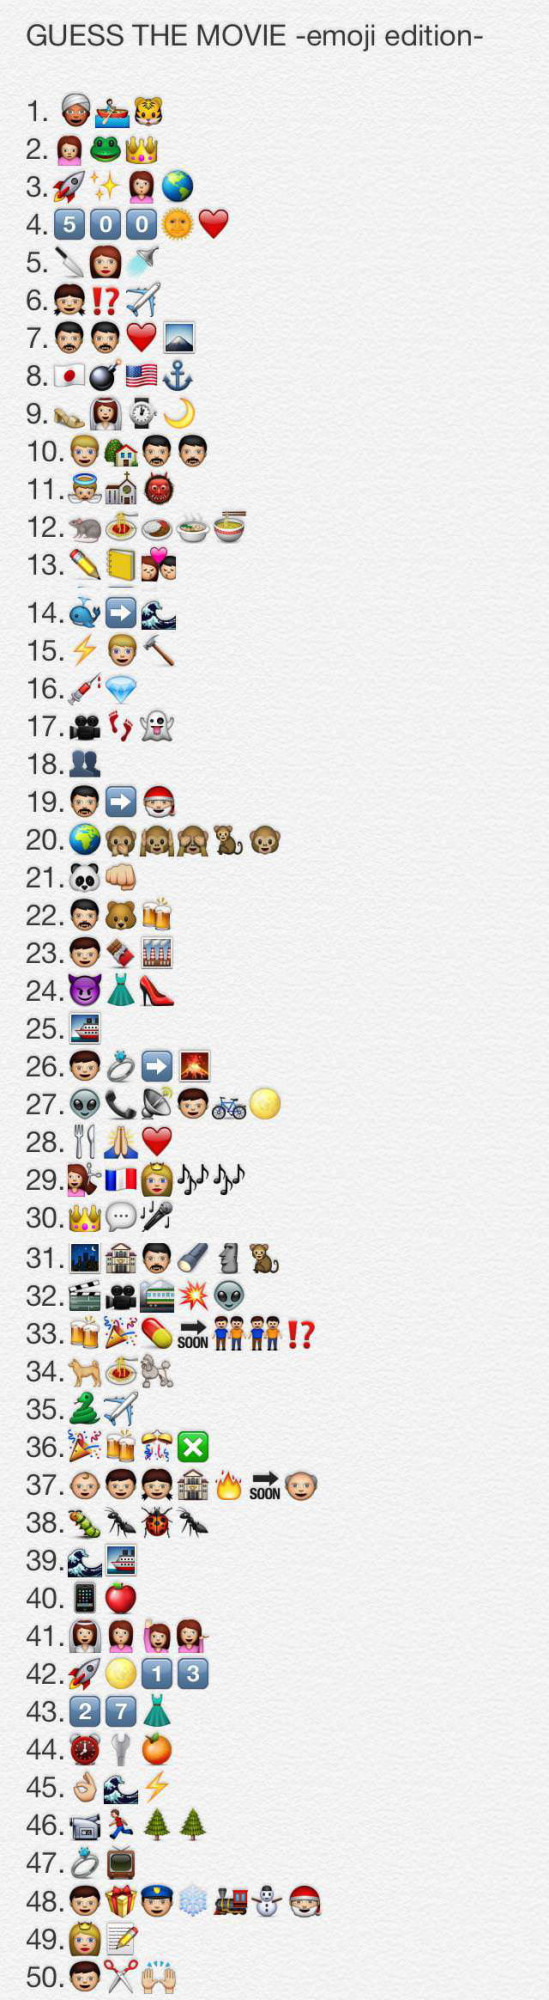 emoji_guess_the_movie